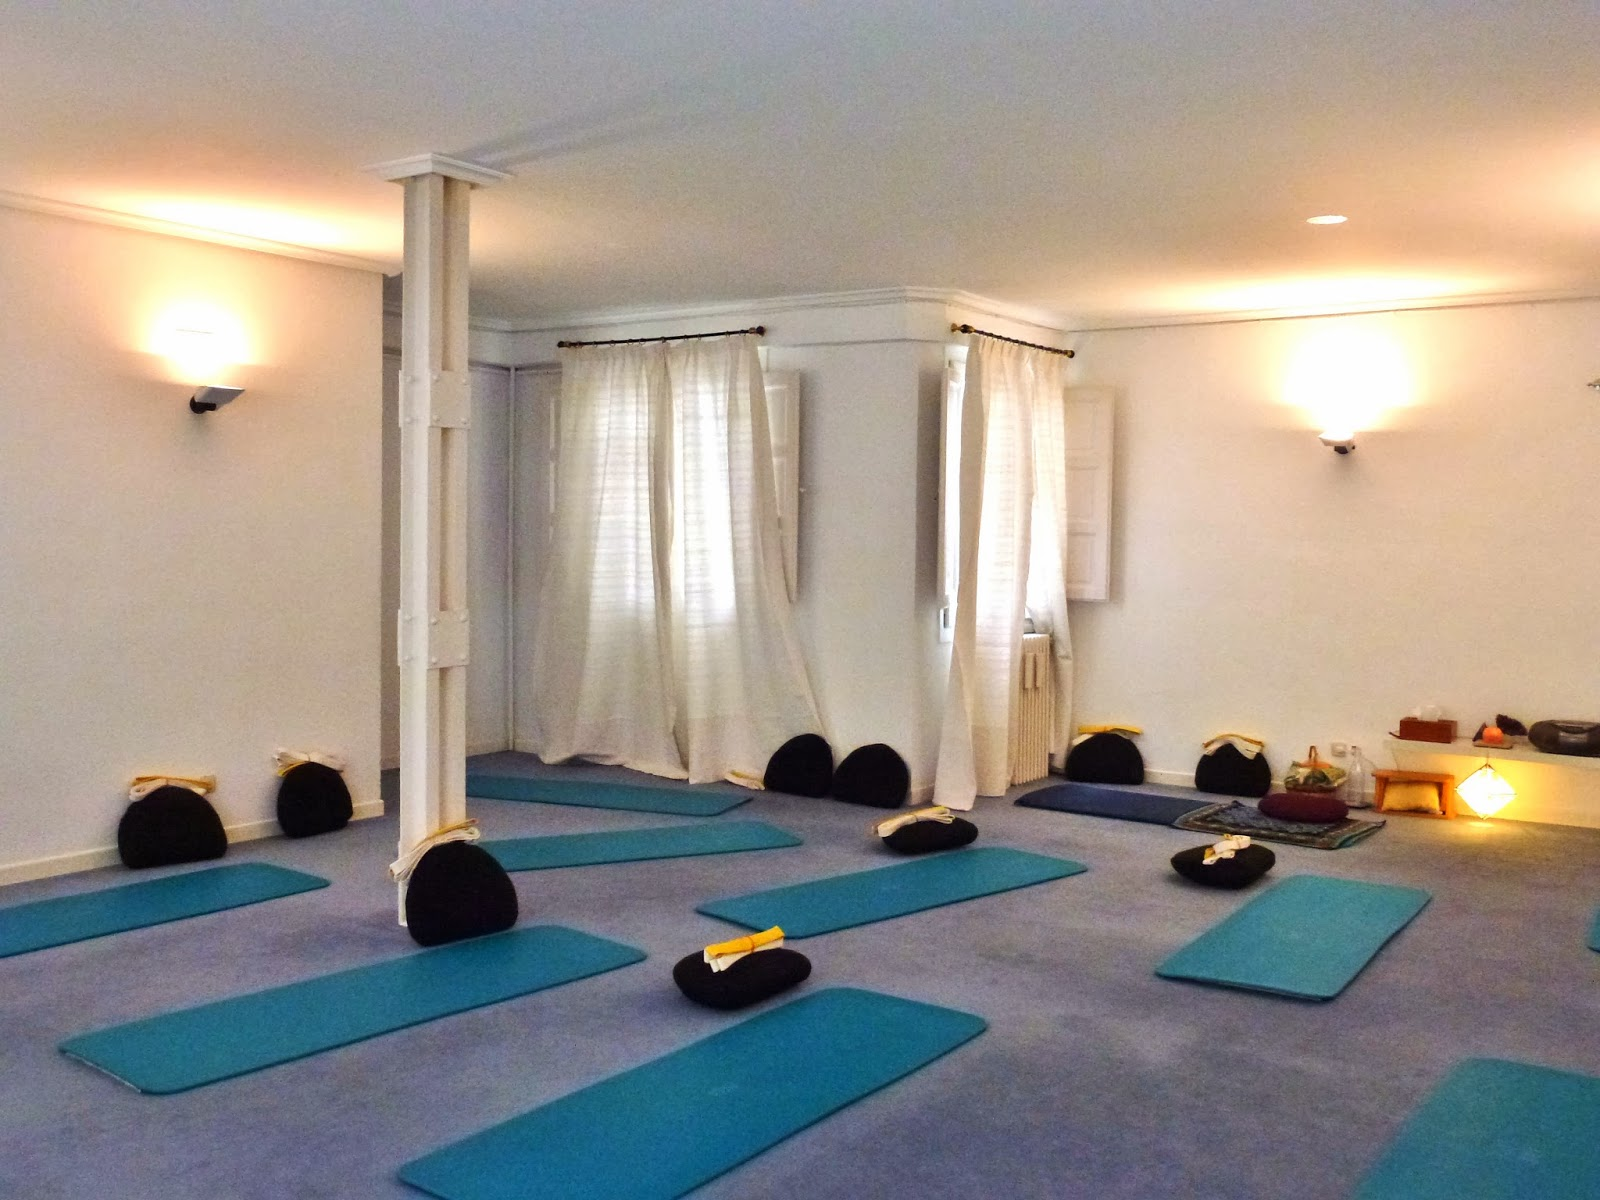 Costa Yoga Studio 7 - photo